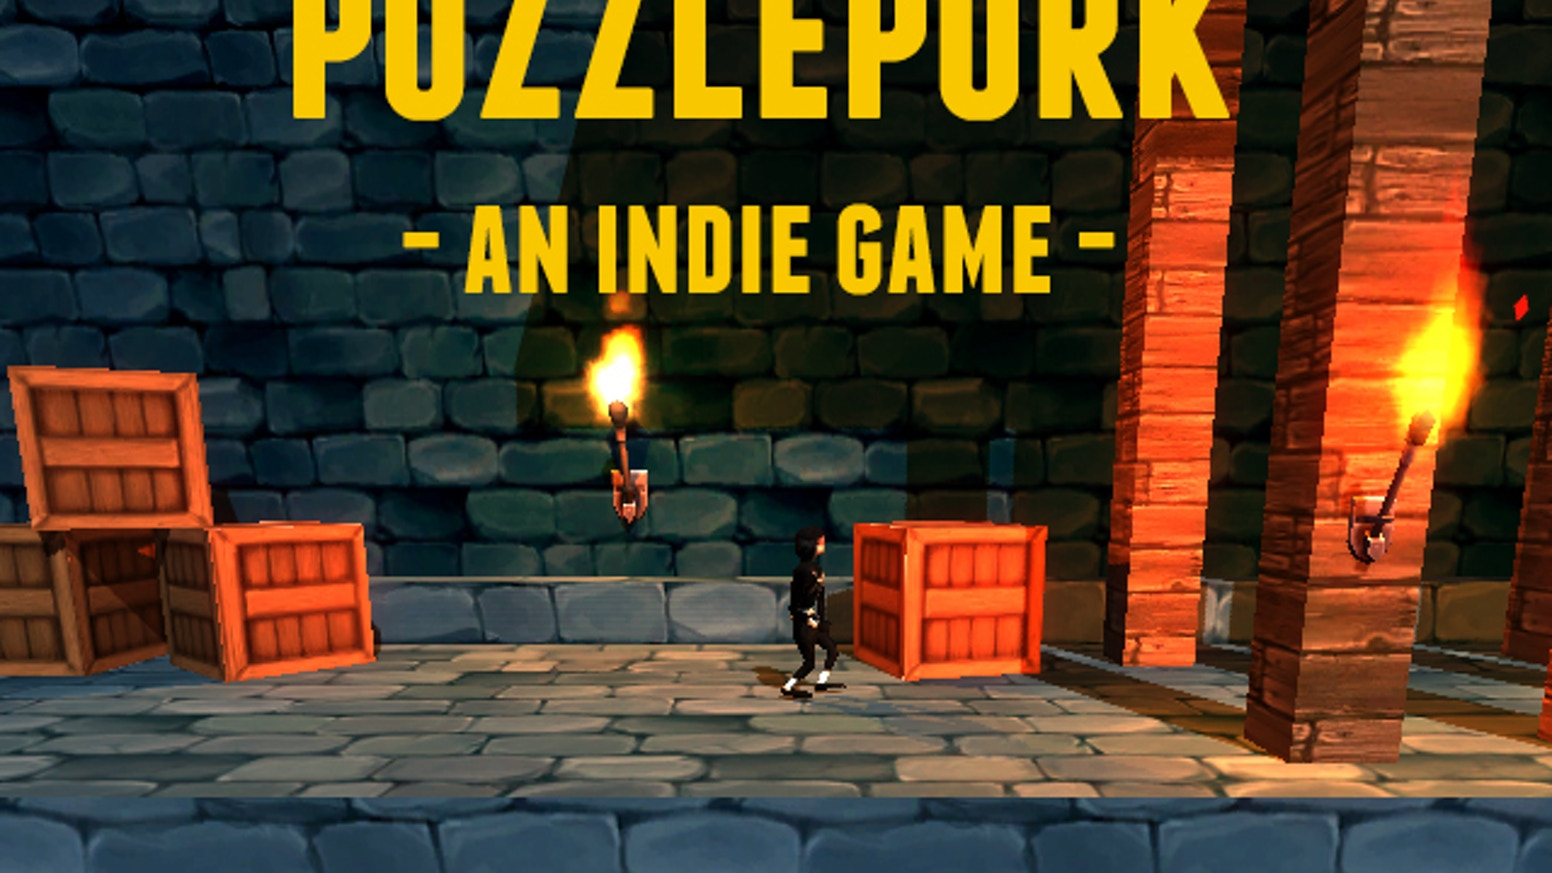 PuzzlePork: Coming to PC, Mac iOS and Android by decerto